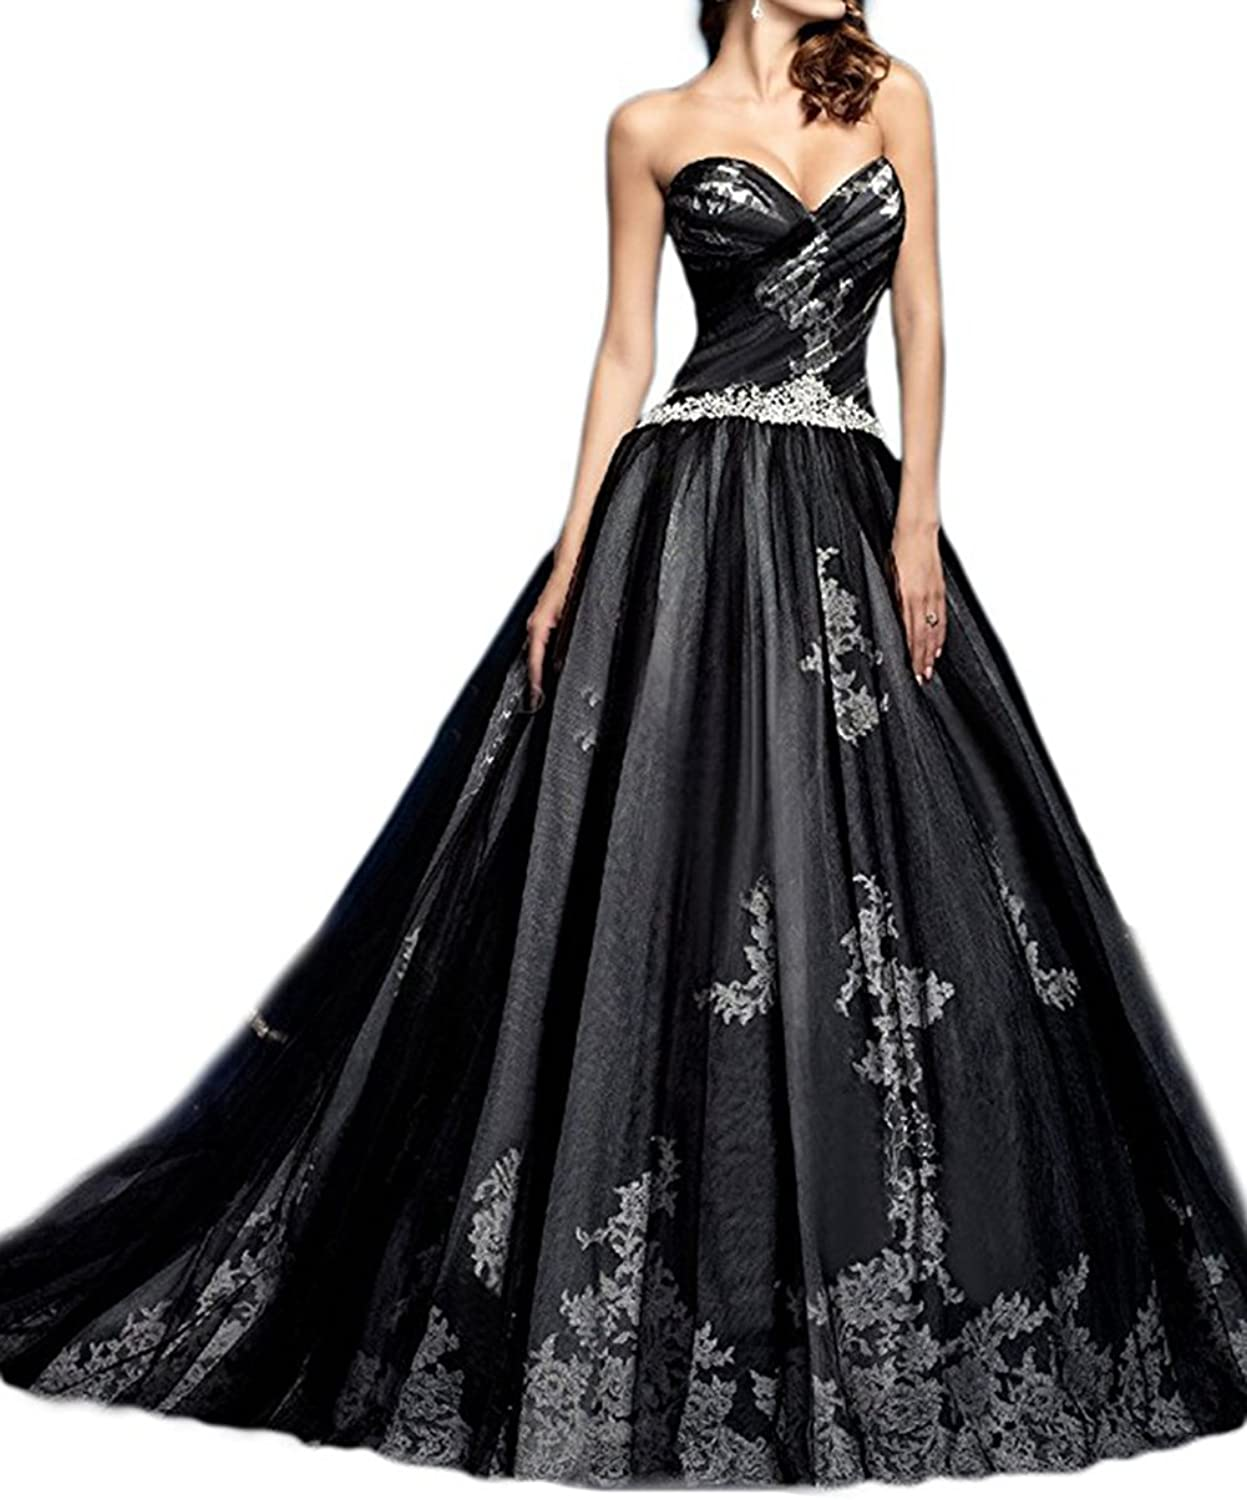 Homdor Women Sweetheart Mermaid Prom Evening Dress 2017 Long Lace Formal Gown